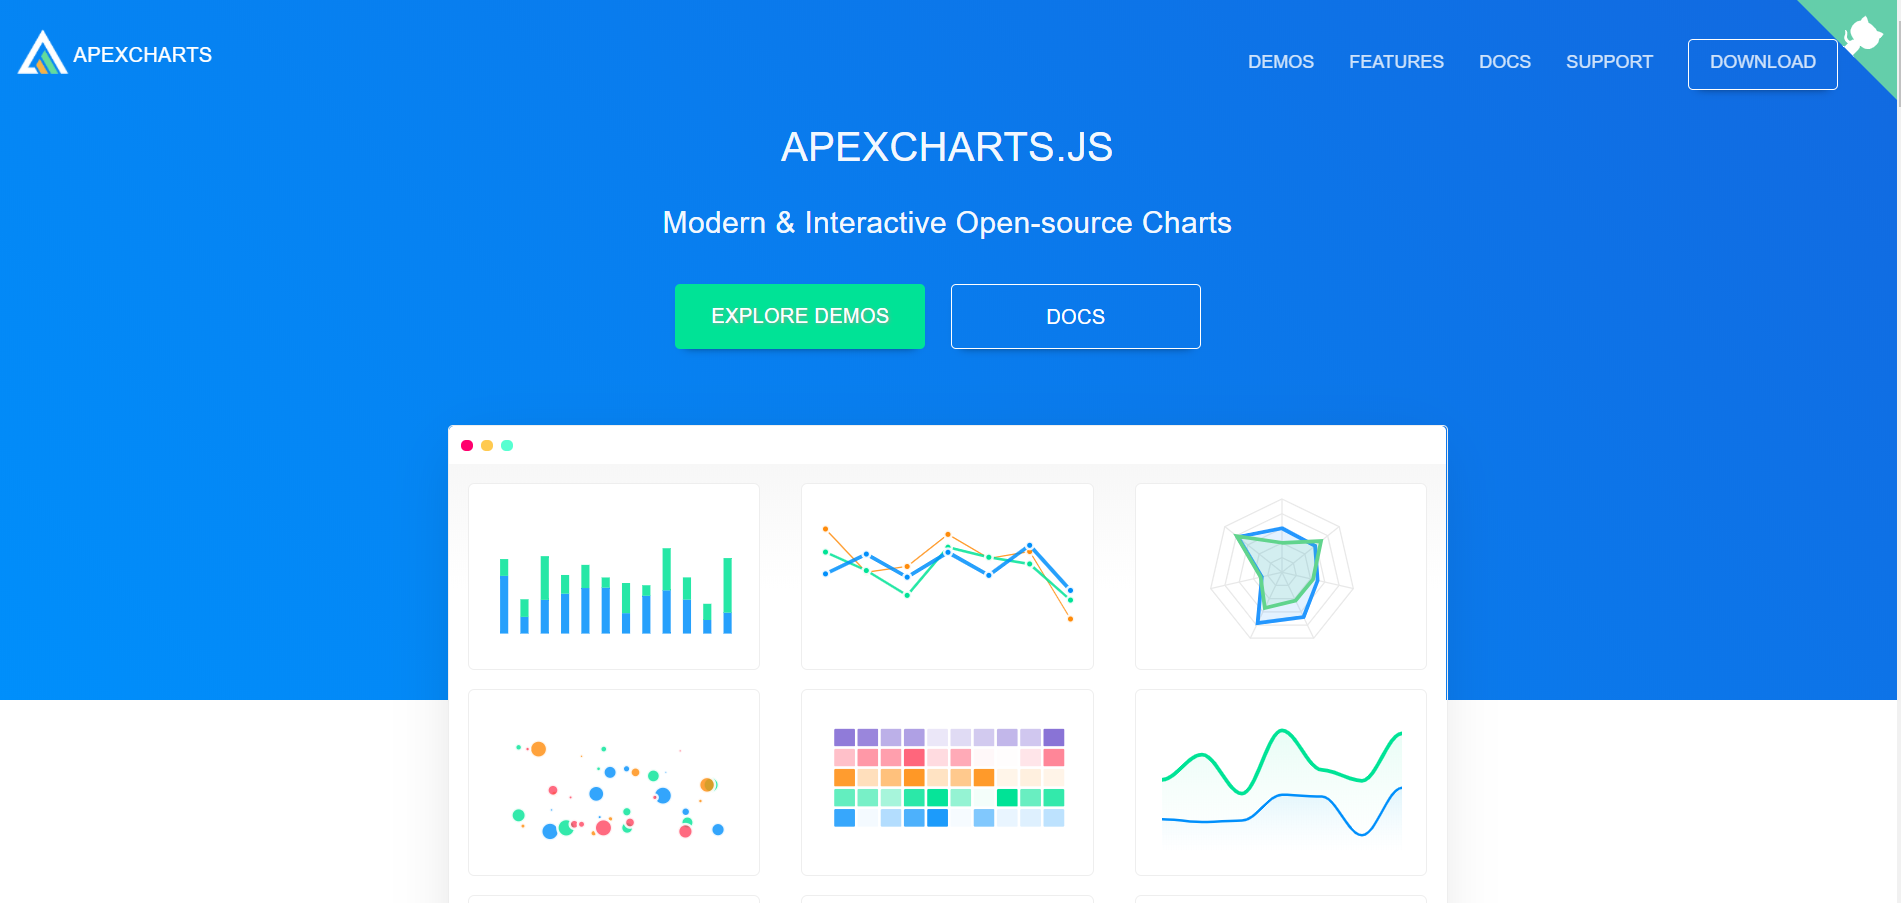 ApexCharts – Modern & Interactive Open-source Charts